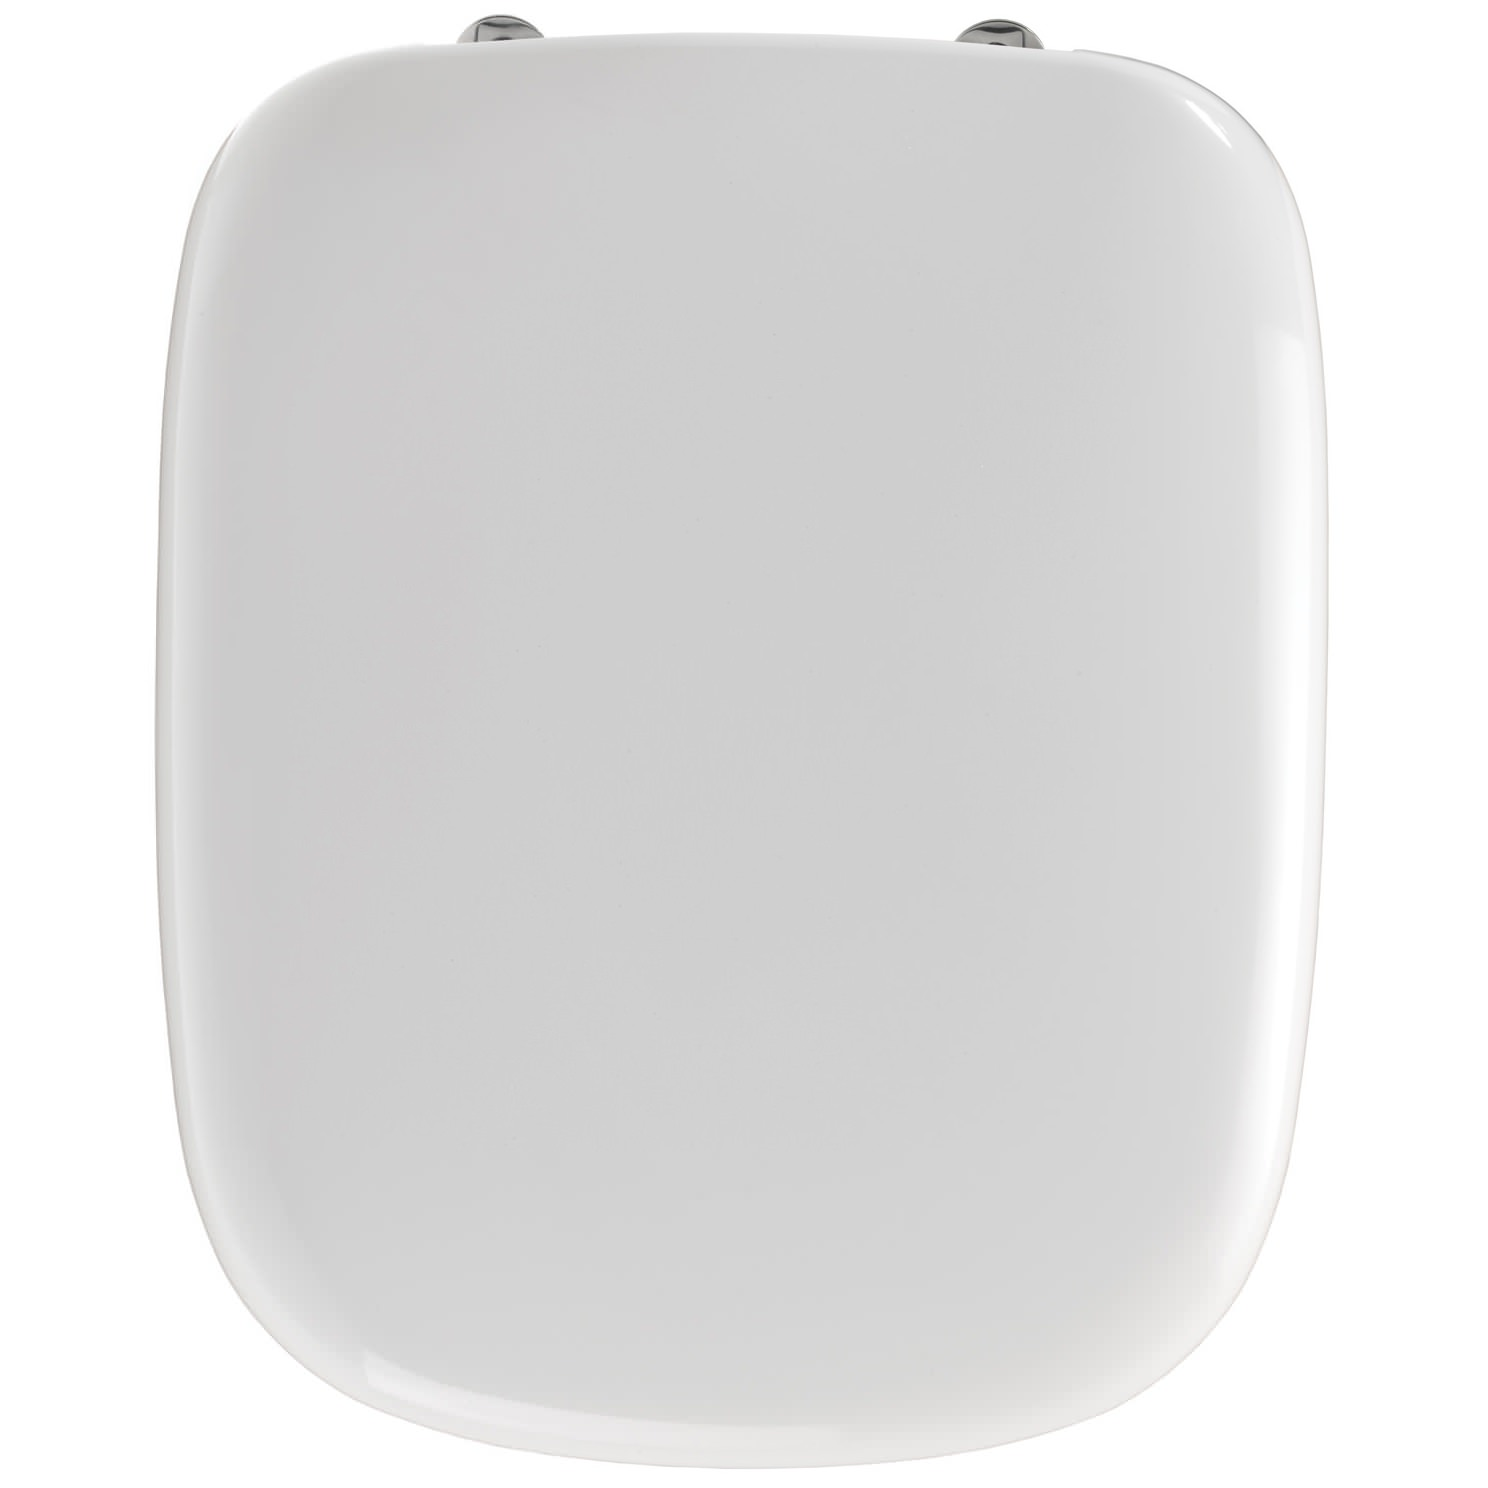 Twyford Moda Toilet Seat And Cover With Stainless Steel Hinges